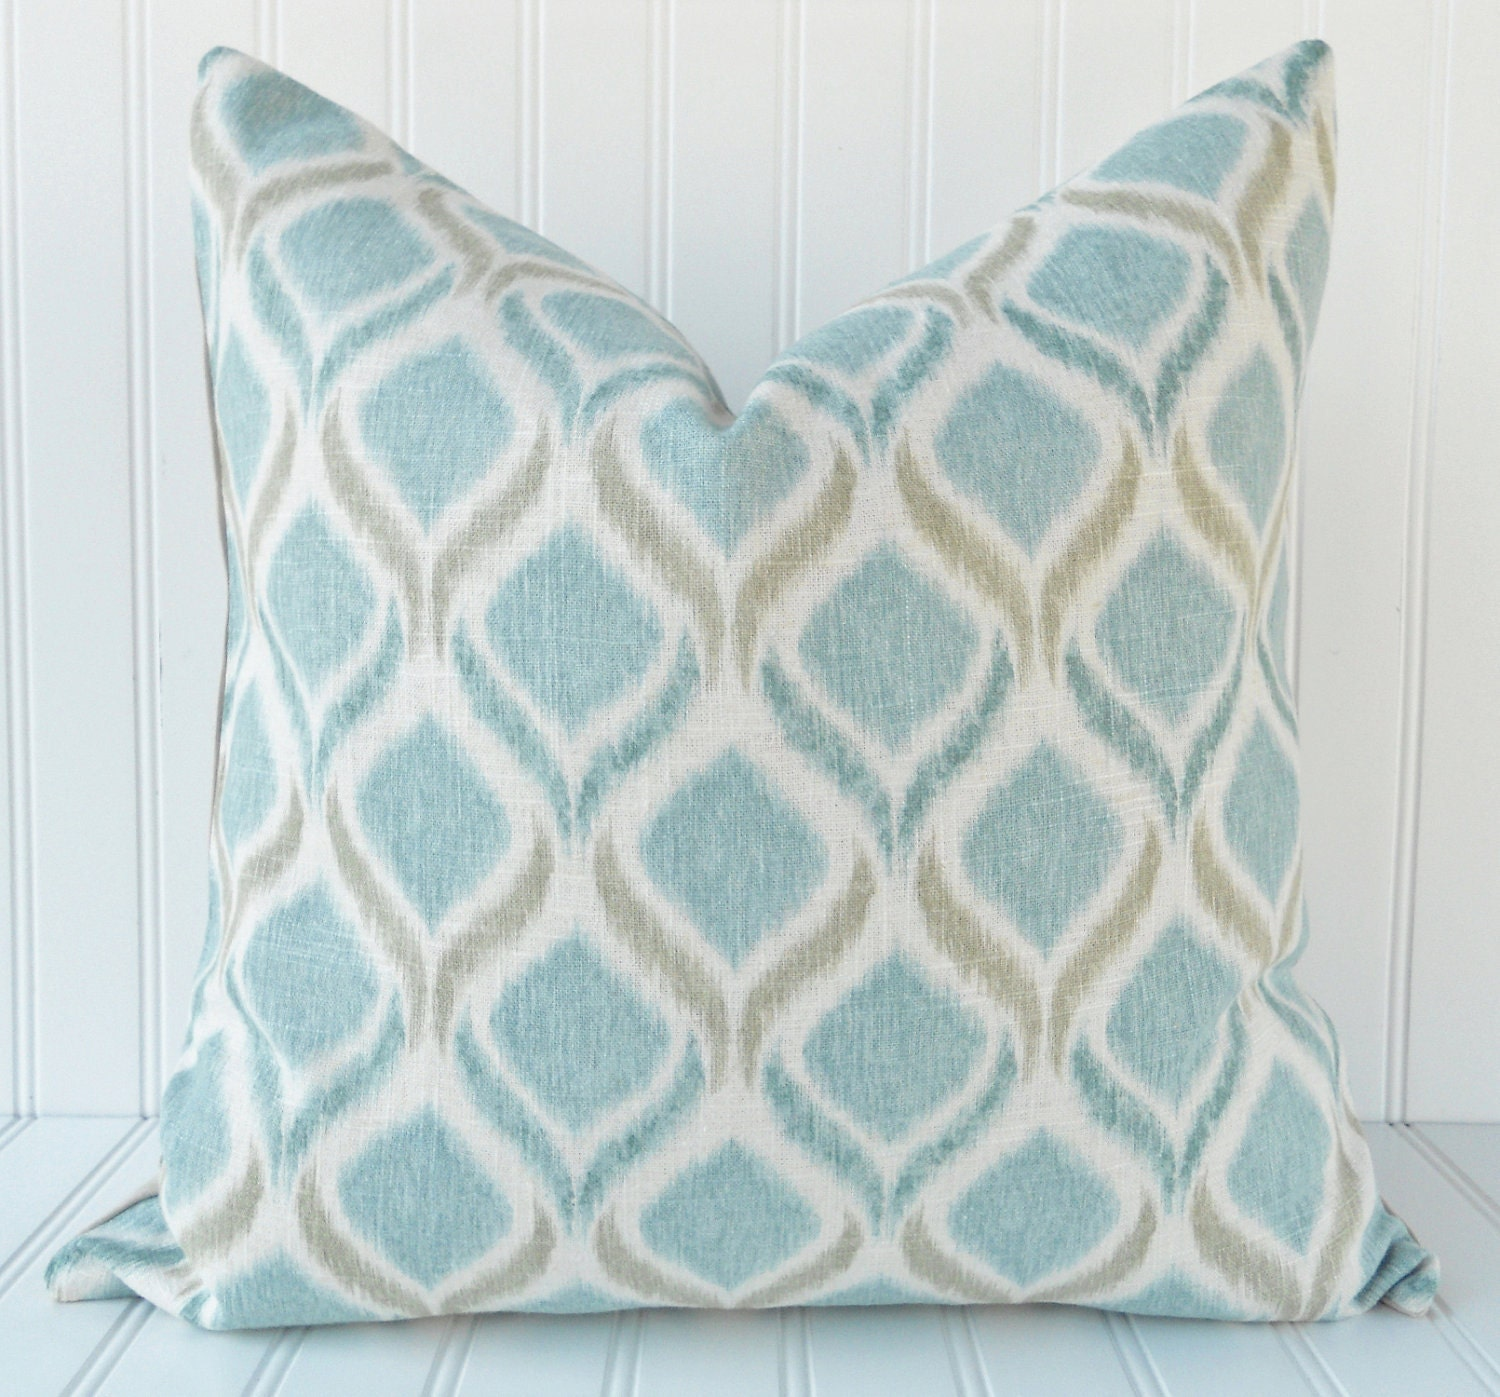 Blue IKAT Throw Pillow 18 x 18 inch Blue Teal Taupe and